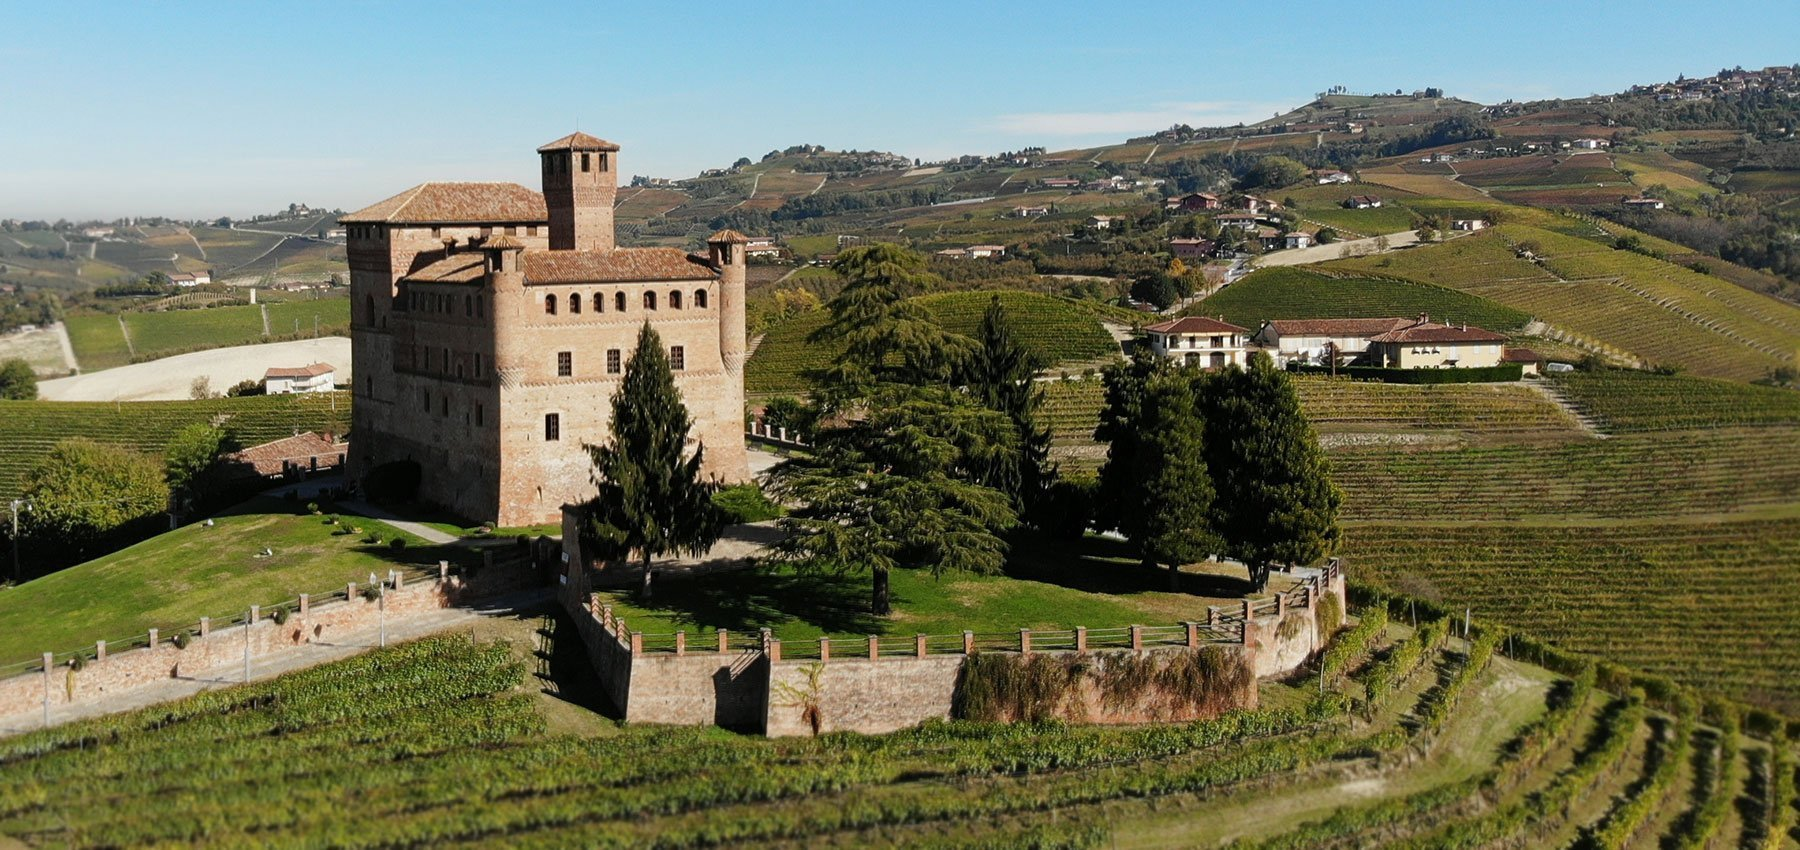 The winegrowing Count of Cavour